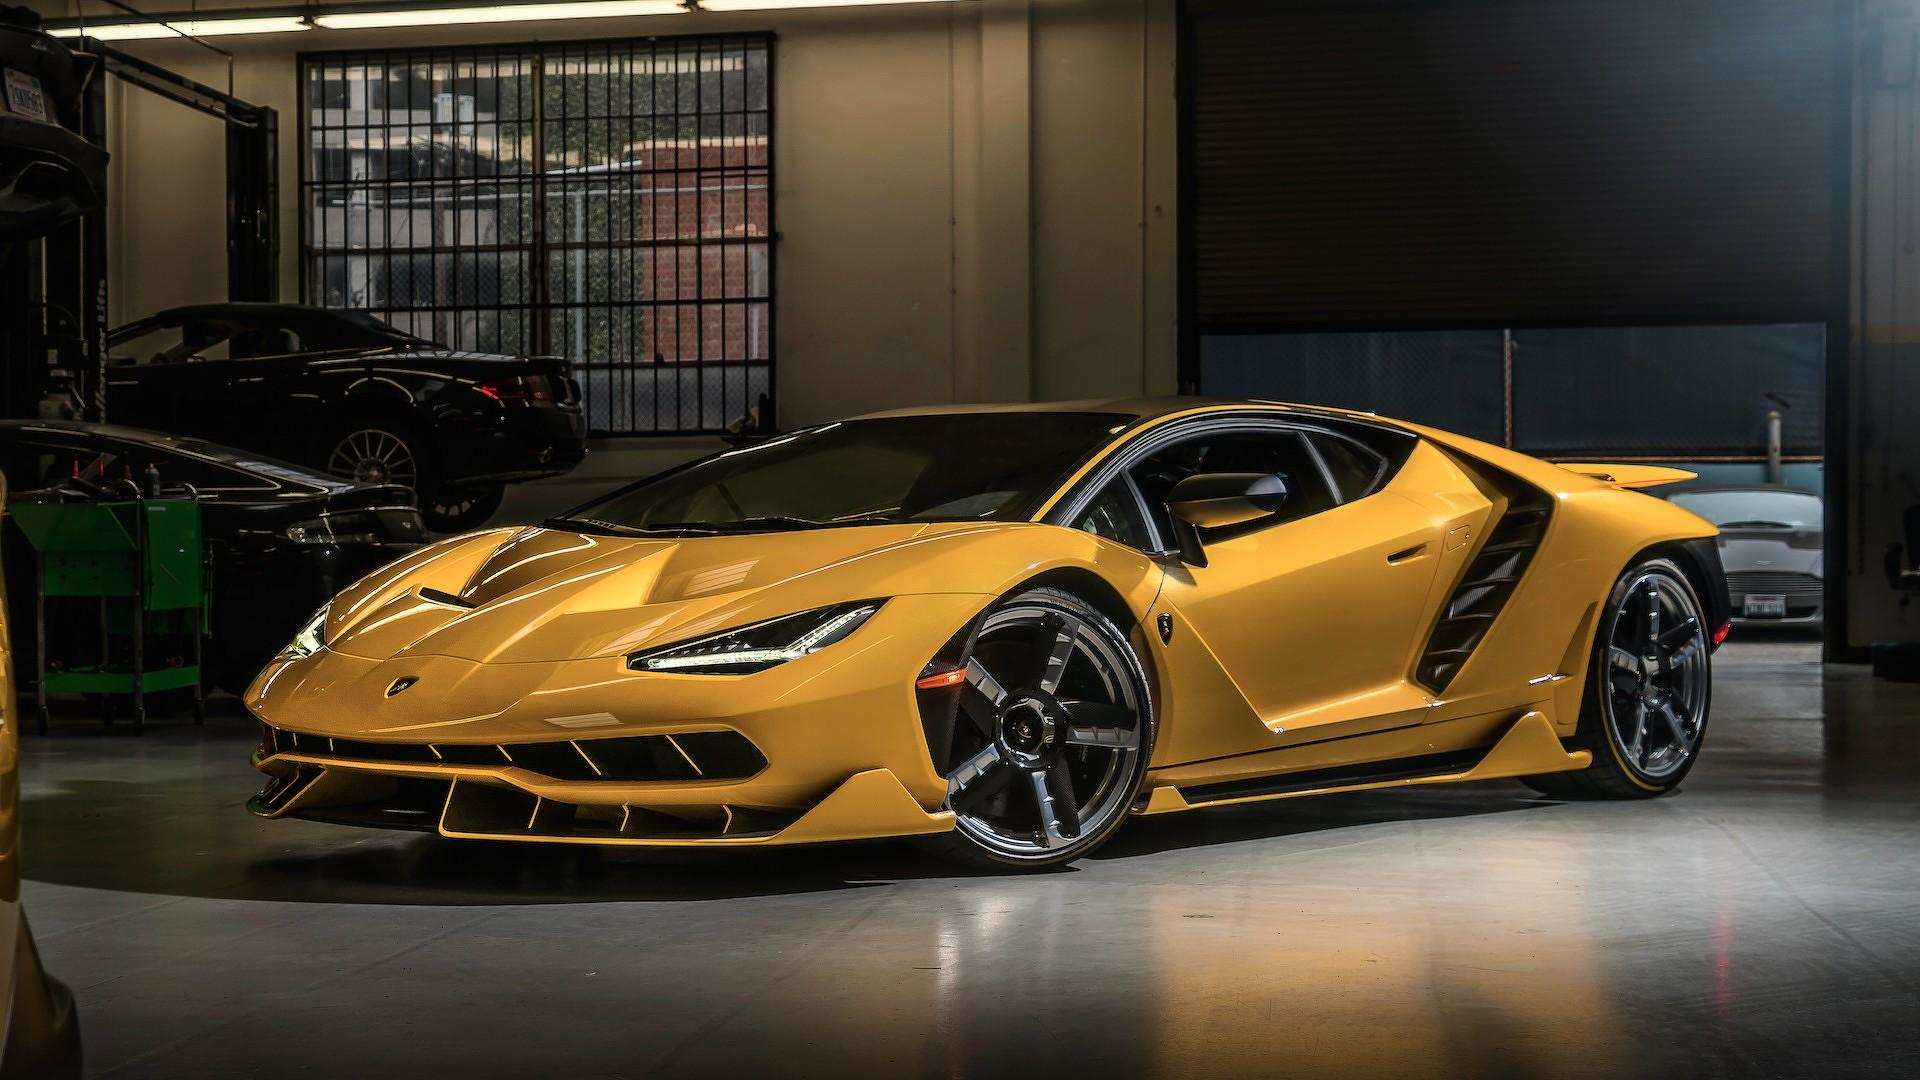 Two New Lamborghini Centenarios Have Landed In The US